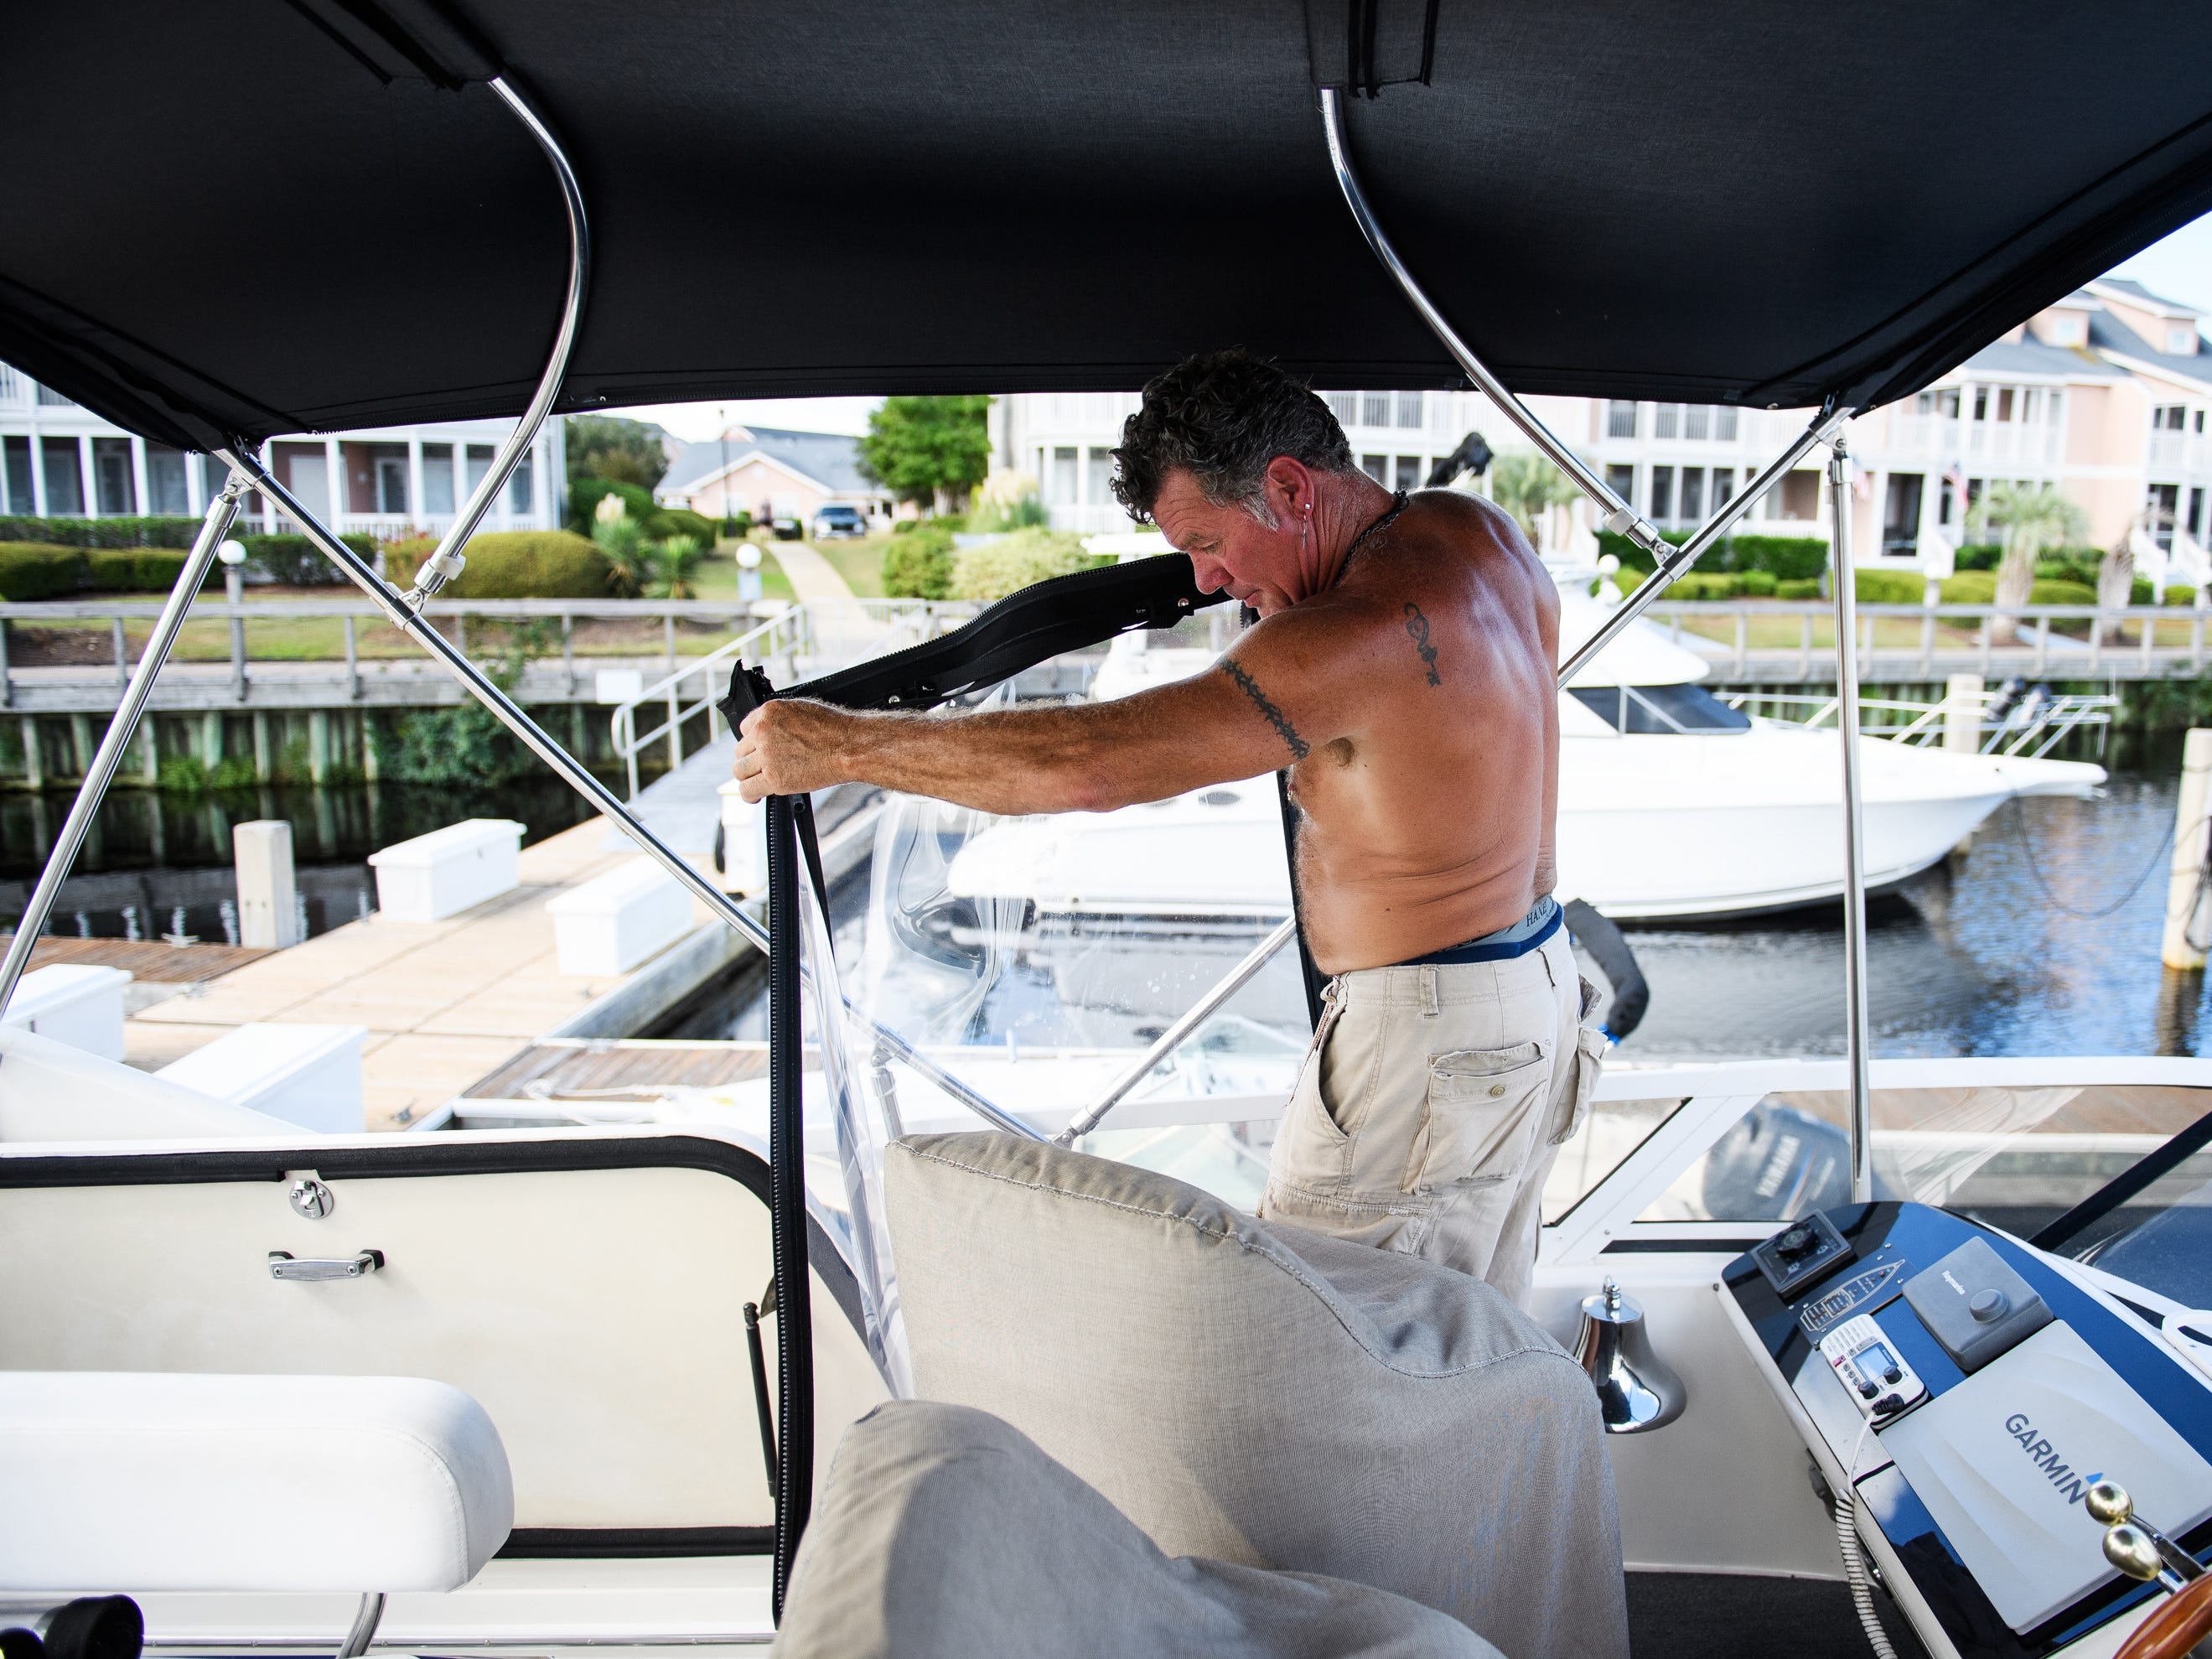 Sep 12, 2018; North Myrtle Beach, SC, USA; Masten Cloer prepares his boat for Hurricane Florence at the Lightkeepers Marina in North Myrtle Beach. Cloer, who lives in North Carolina, said he drove down to protect his new boat and will be staying on it during the hurricane.